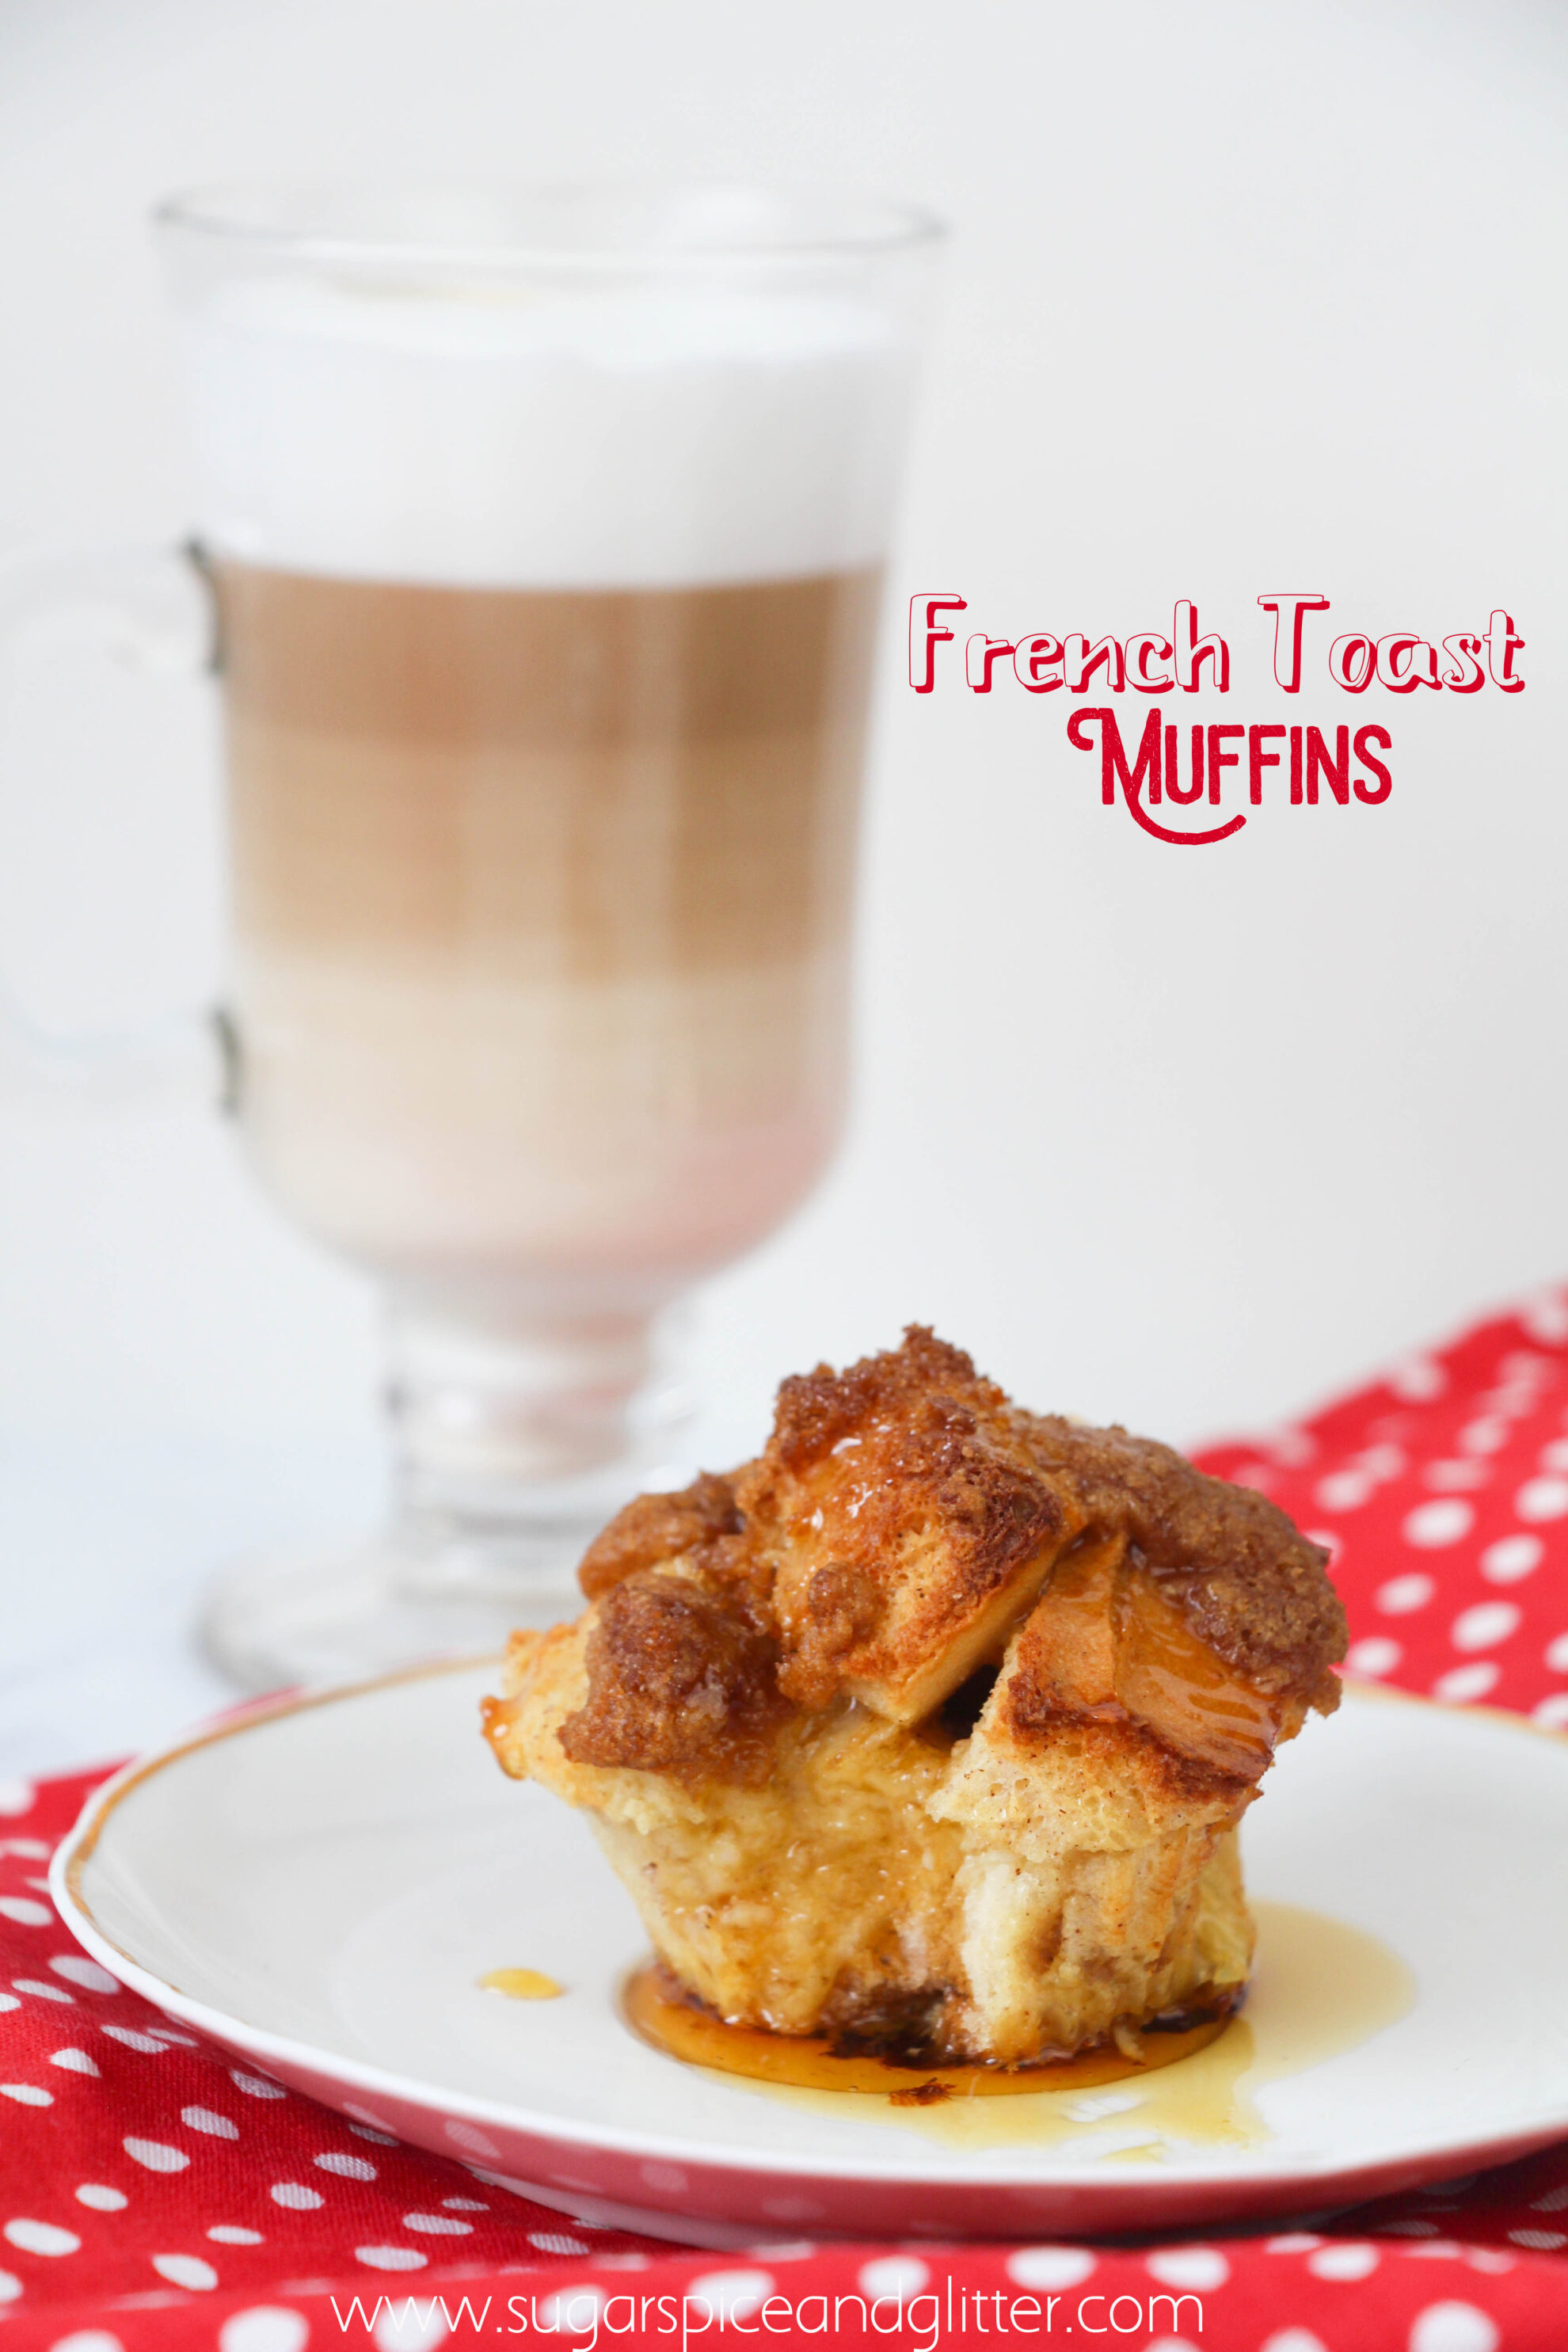 Perfect French Toast Muffins with a crunchy-sweet crumb topping, these easy breakfast muffins are a fun twist on French Toast that you can take on-the-go ad